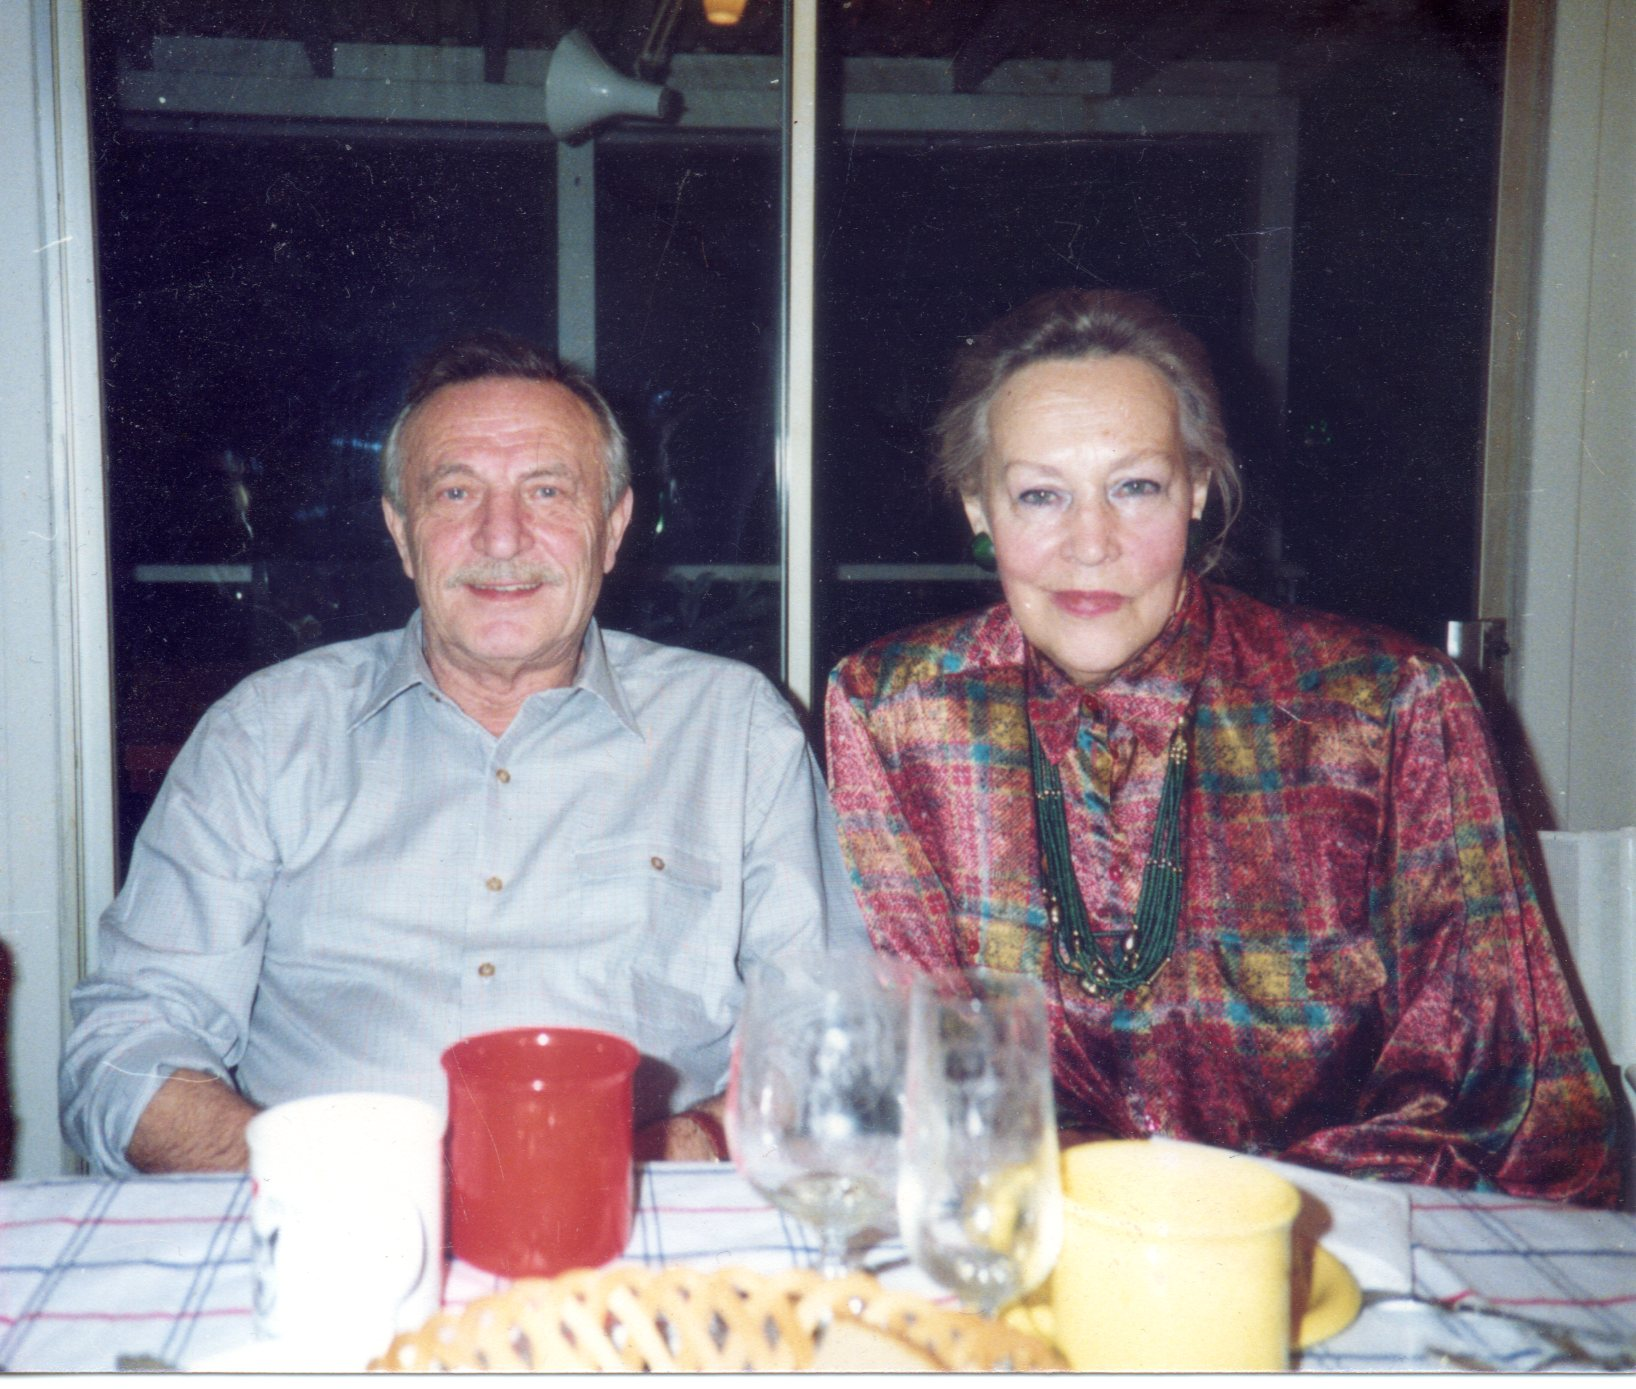 Mikhail and Tamara in New York. Source: Personal archive